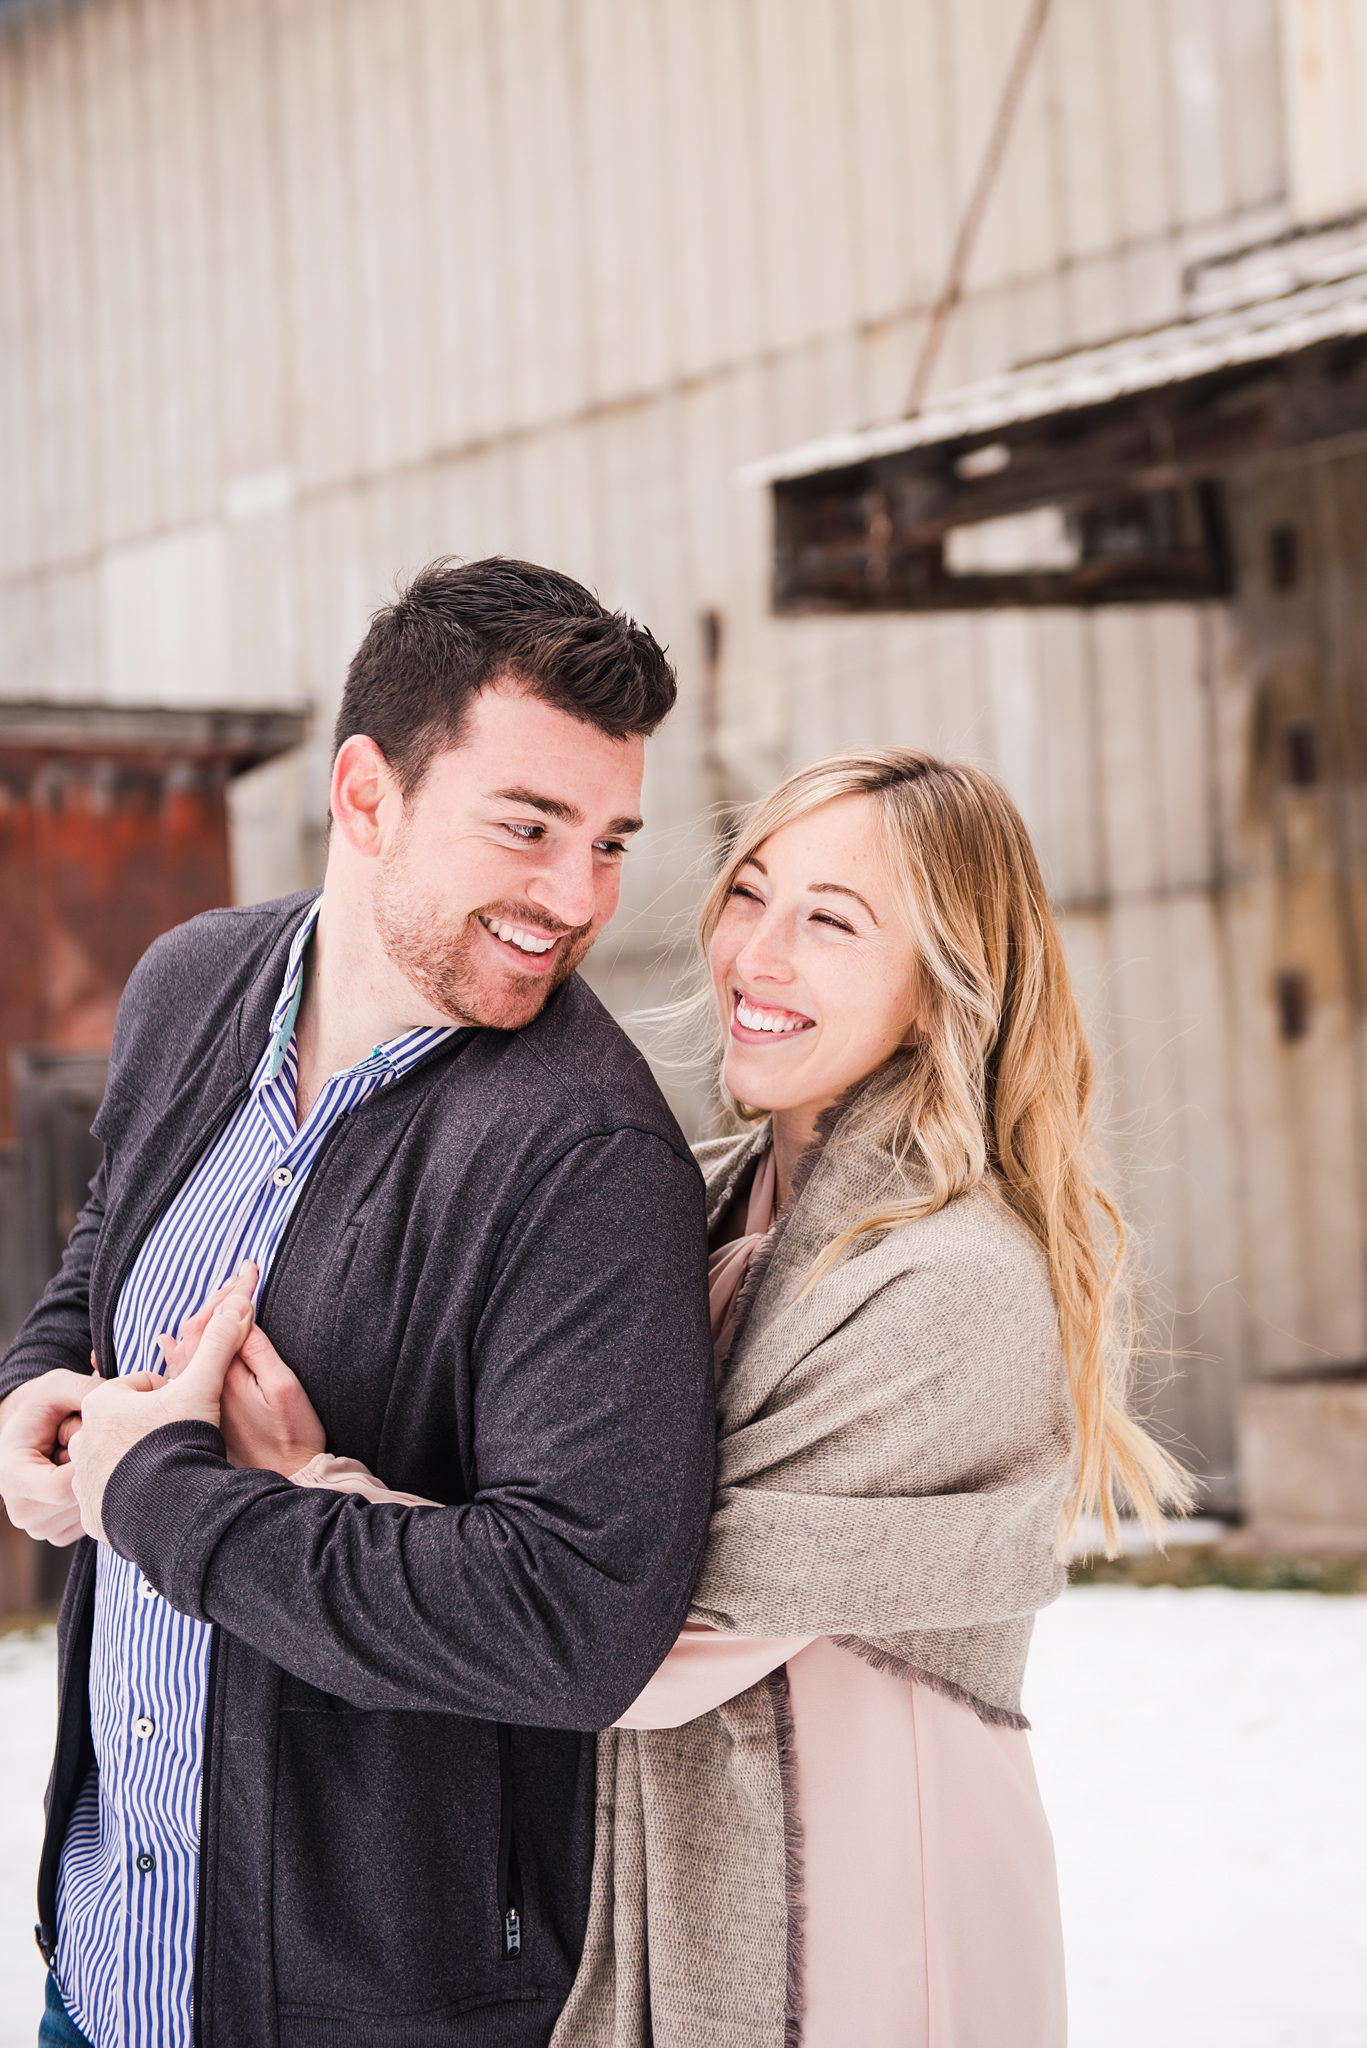 Schoen_Place_Rochester_Engagement_Session_JILL_STUDIO_Rochester_NY_Photographer_DSC_1215.jpg